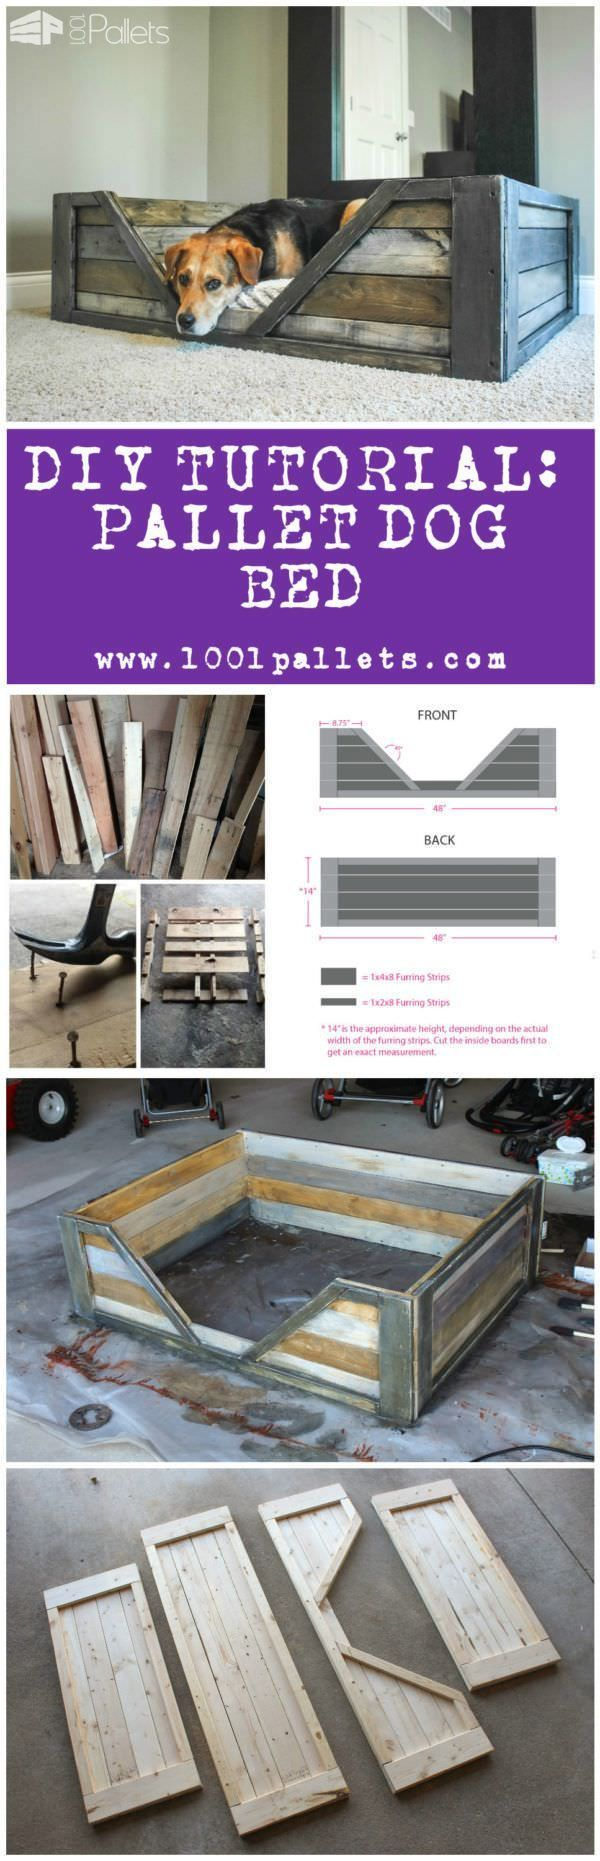 """Diy Tutorial: Pallet Dog Bed This tutorial by Dana Laureano from the blog """"Ruggy DIY"""" in collaboration with 1001Pallets will describe how to make this dog basketout of 2 to 3repurposed wooden pallets. 2 or 3 Pallets. 6 Hours. We evaluated this project as a medium difficulty project. Available as aPDF File. Todownload this tutorial, simply subscribe to our weekly..."""